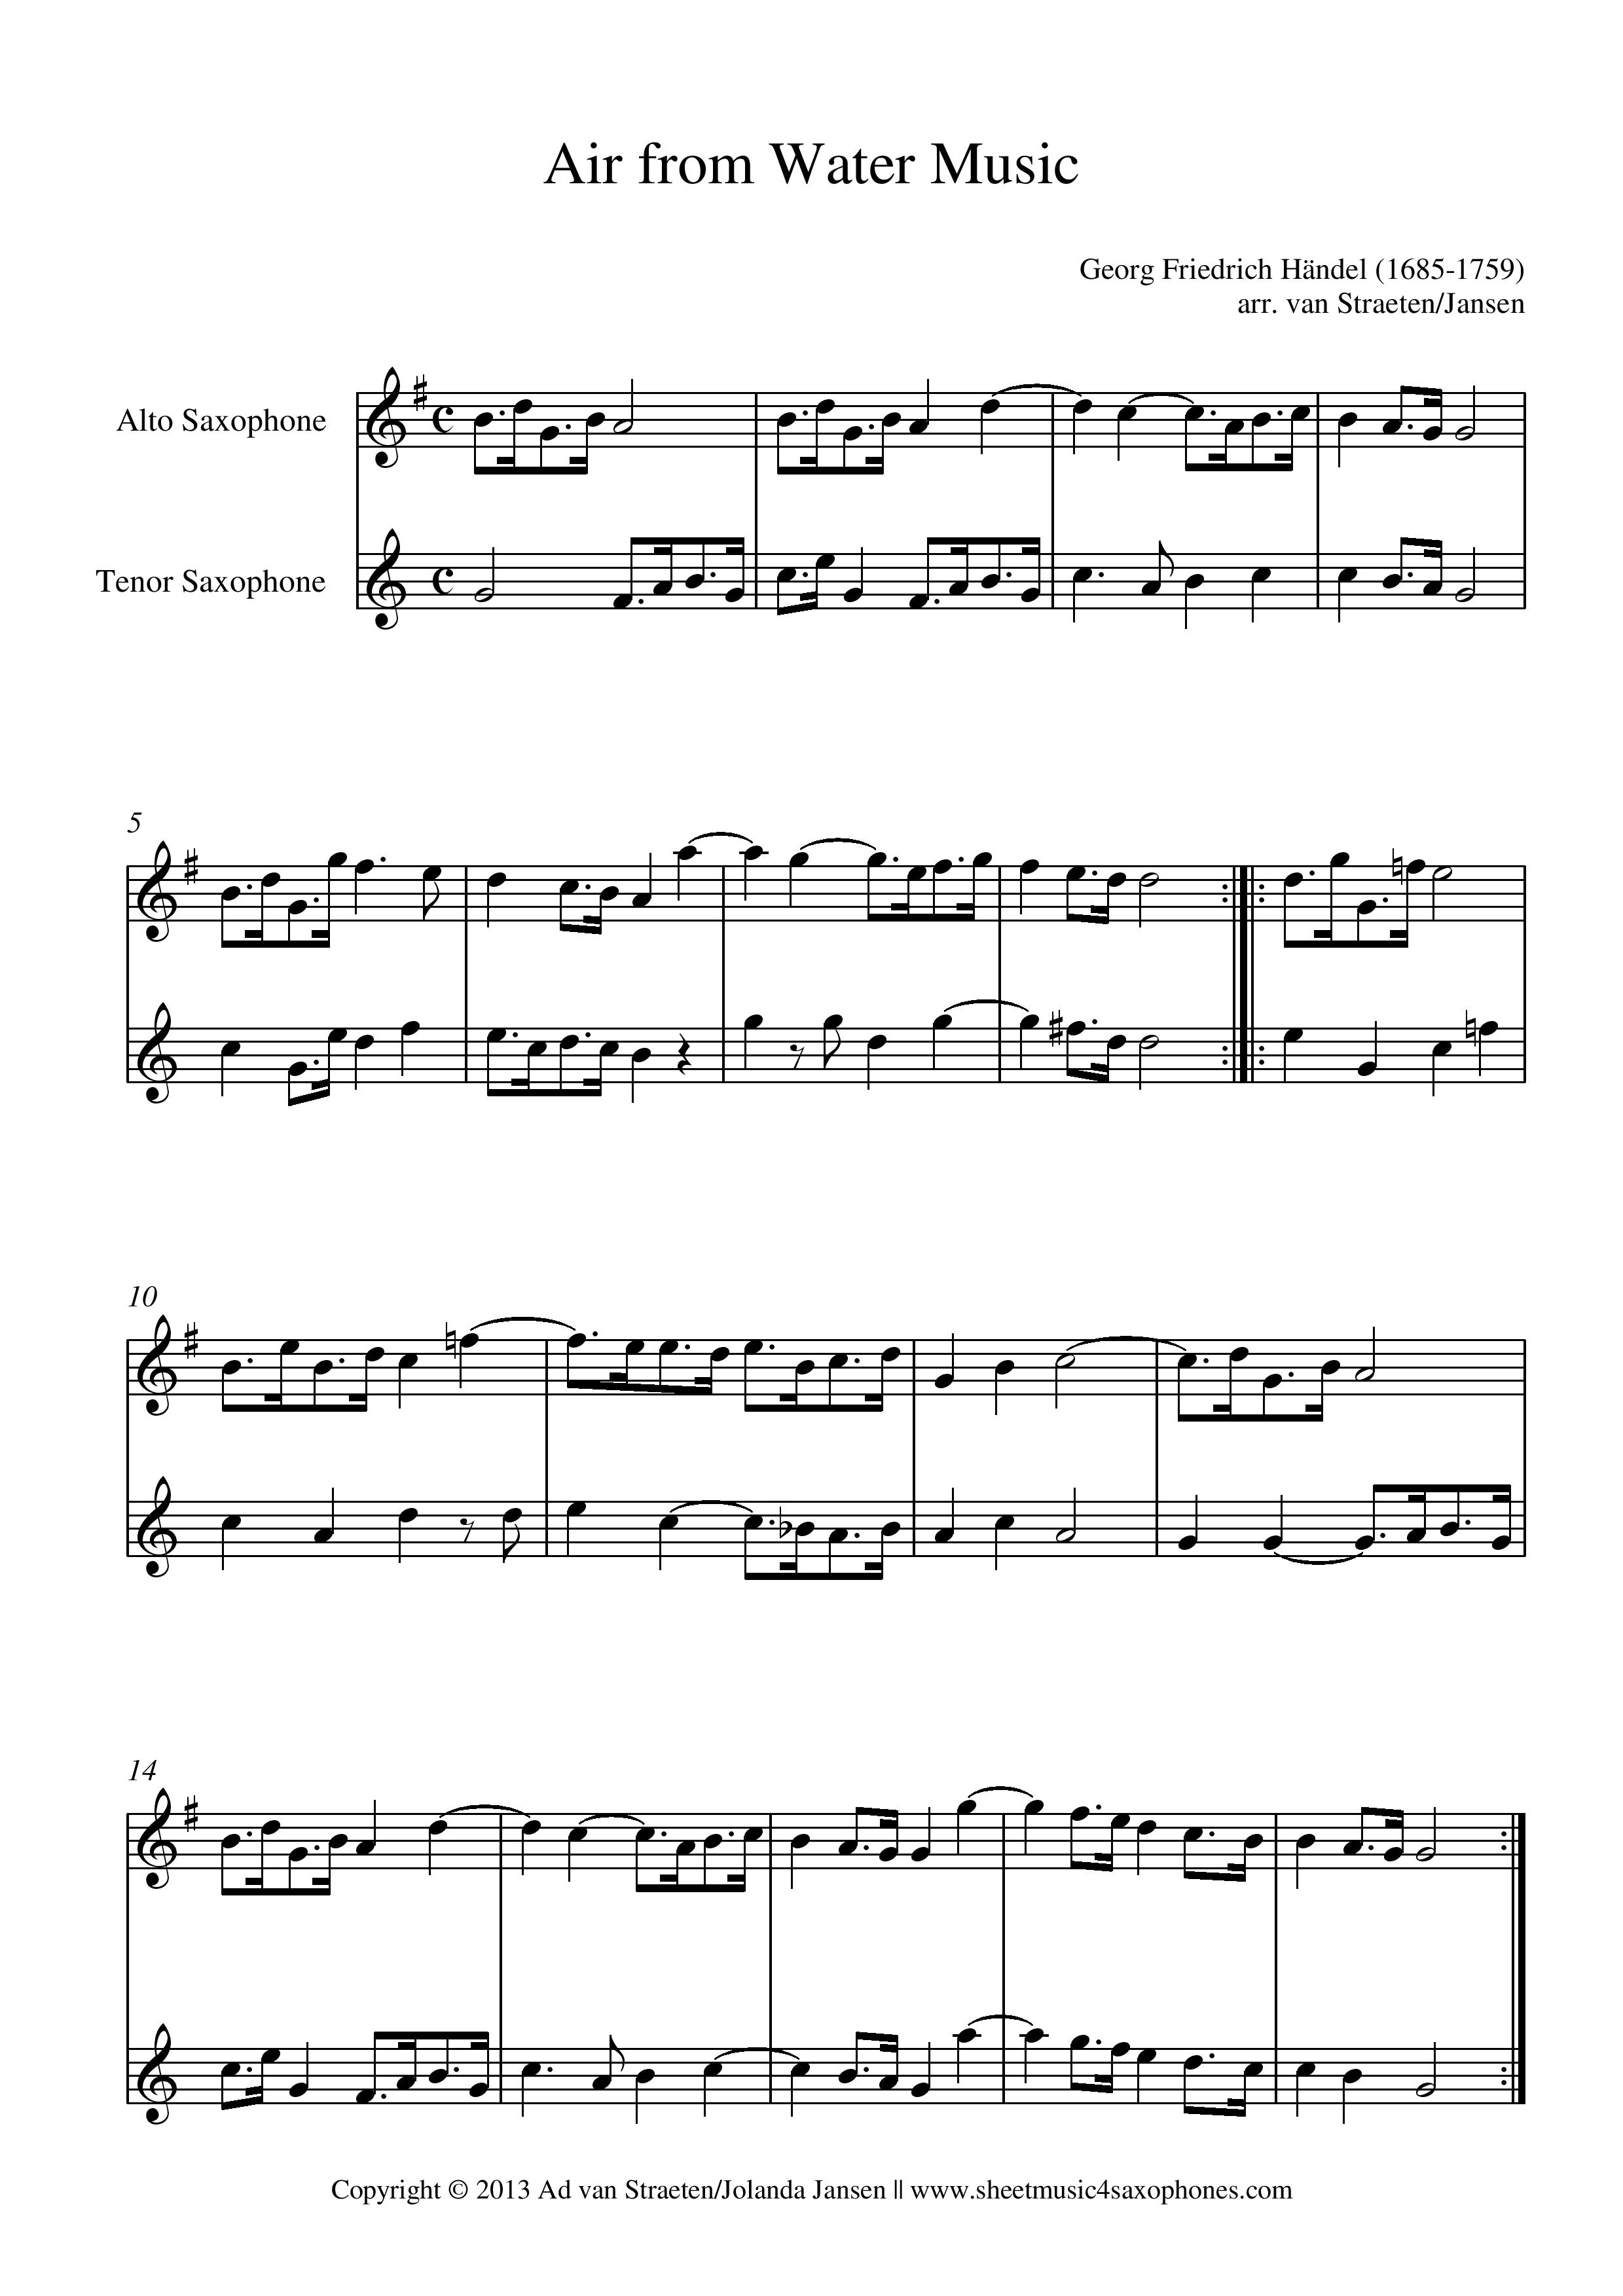 Händel: Air from Water Music for Saxophone